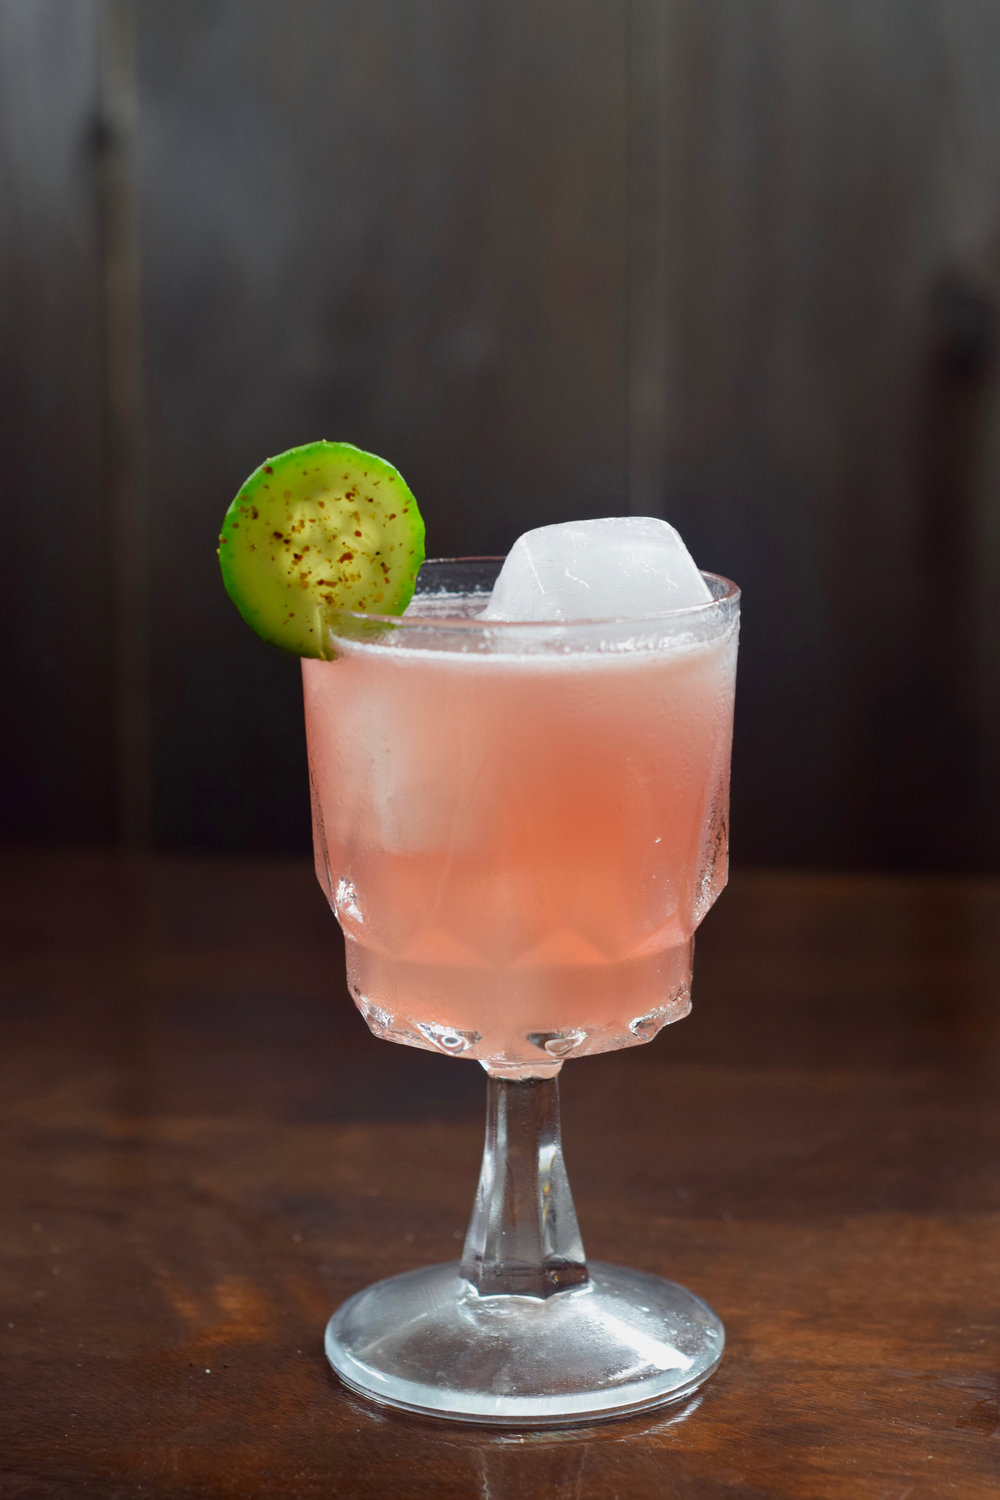 HOT FLASH - 1.5 oz gin1/2 oz st. germain elderflower liqueur3/4 oz nostrum strawberry hibiscus jalapeno shrub3/4 oz fresh lemon juice4 cucumber slicesdirections: muddle, shake with ice, double strain.